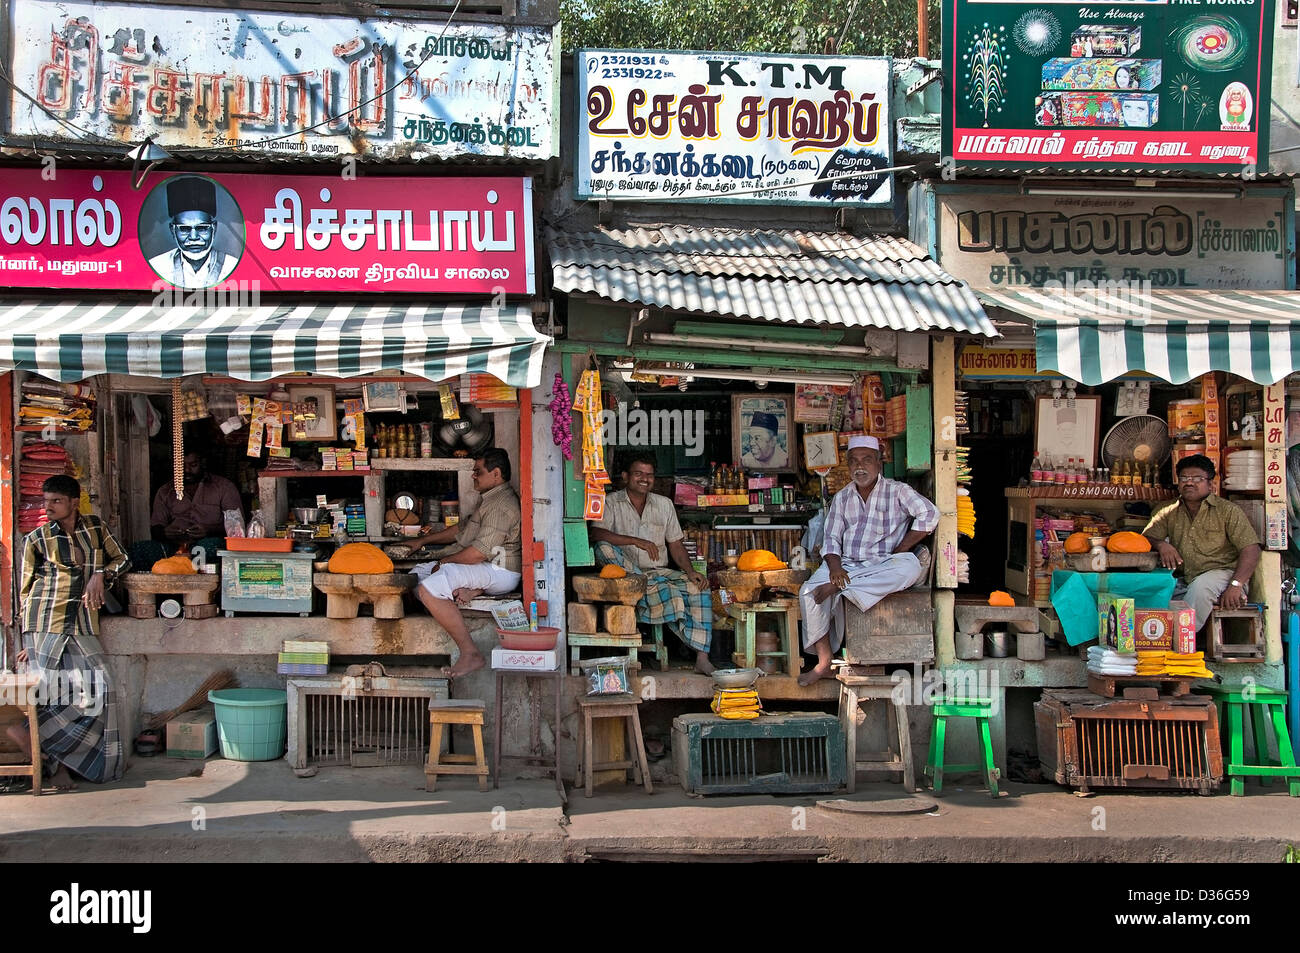 Butter grocer madurai india indian tamil nadu town city for City indian dining ltd t a spice trader